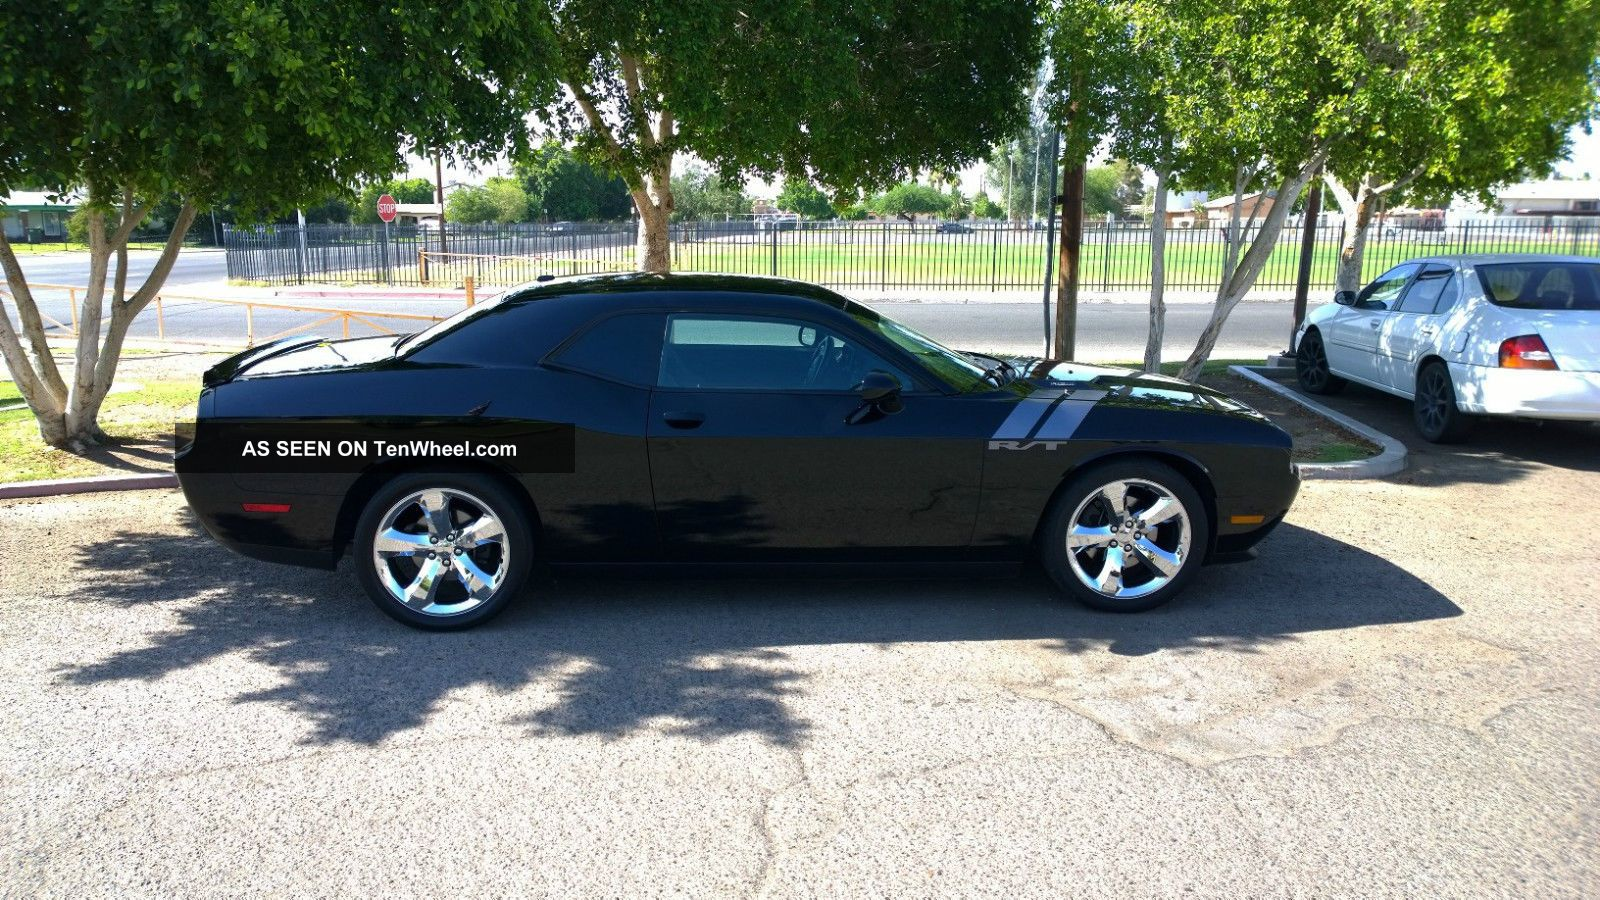 2013 dodge challenger r t coupe 2 door 5 7l challenger photo 4. Cars Review. Best American Auto & Cars Review